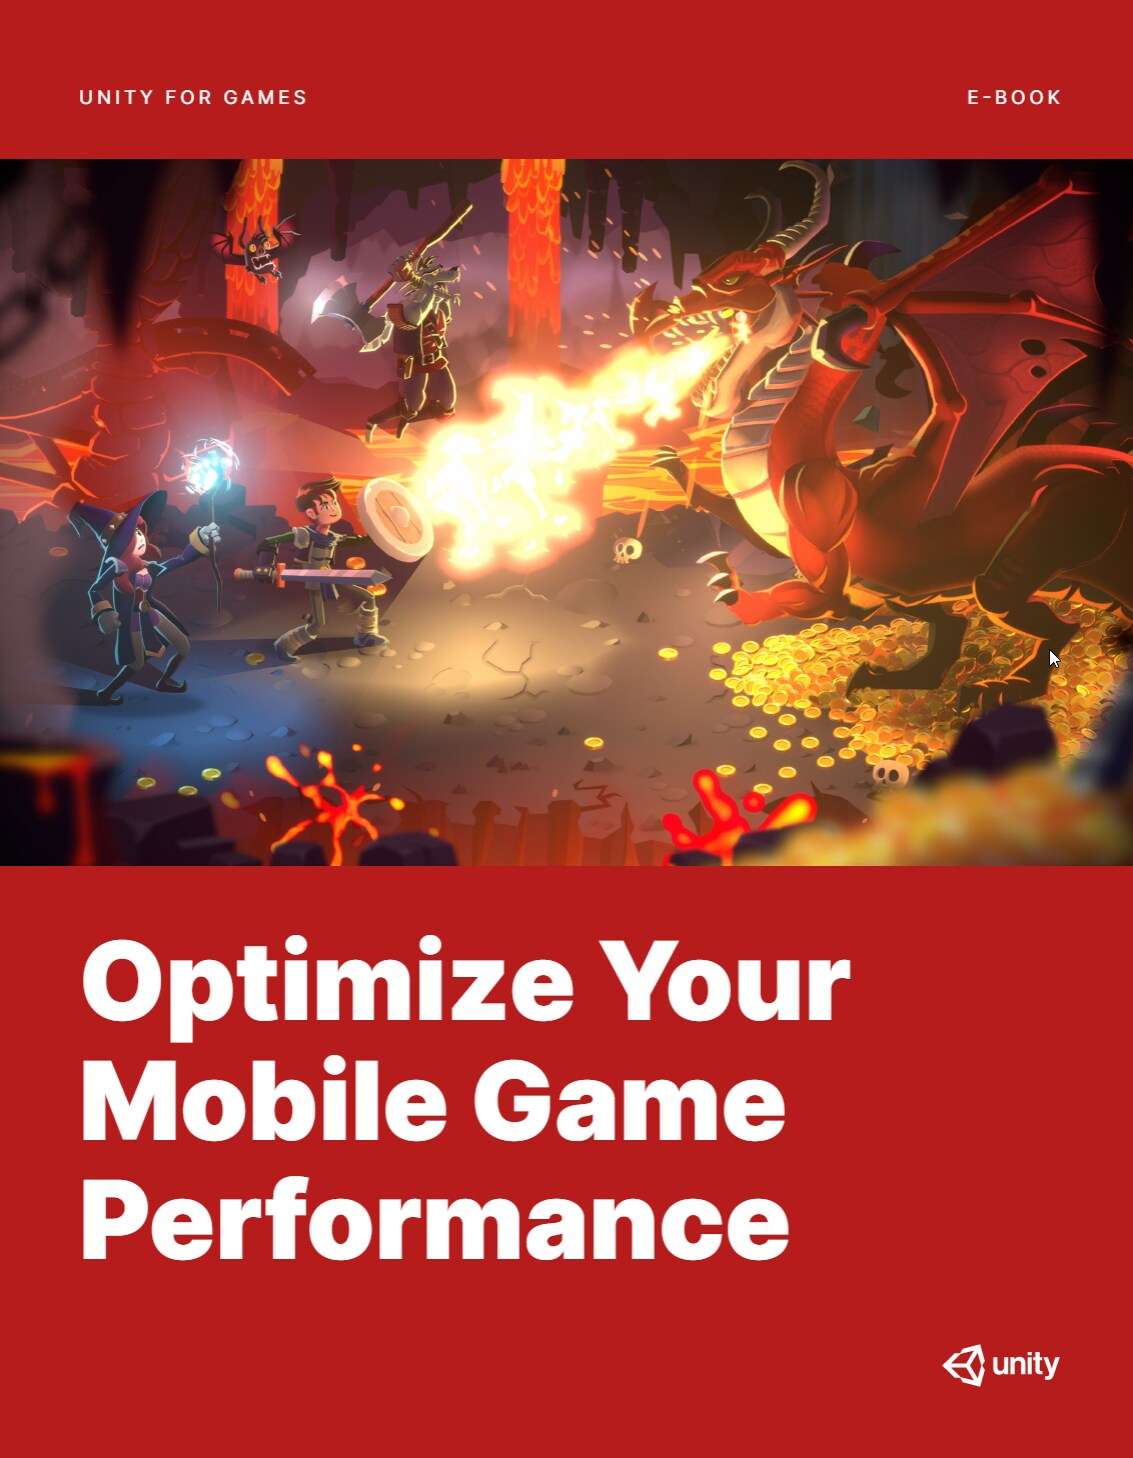 """Image of the ebook cover with red background and a graphic of an adventure game with a dragon and the words """"Optimize your mobile game performance"""" in bold white text."""